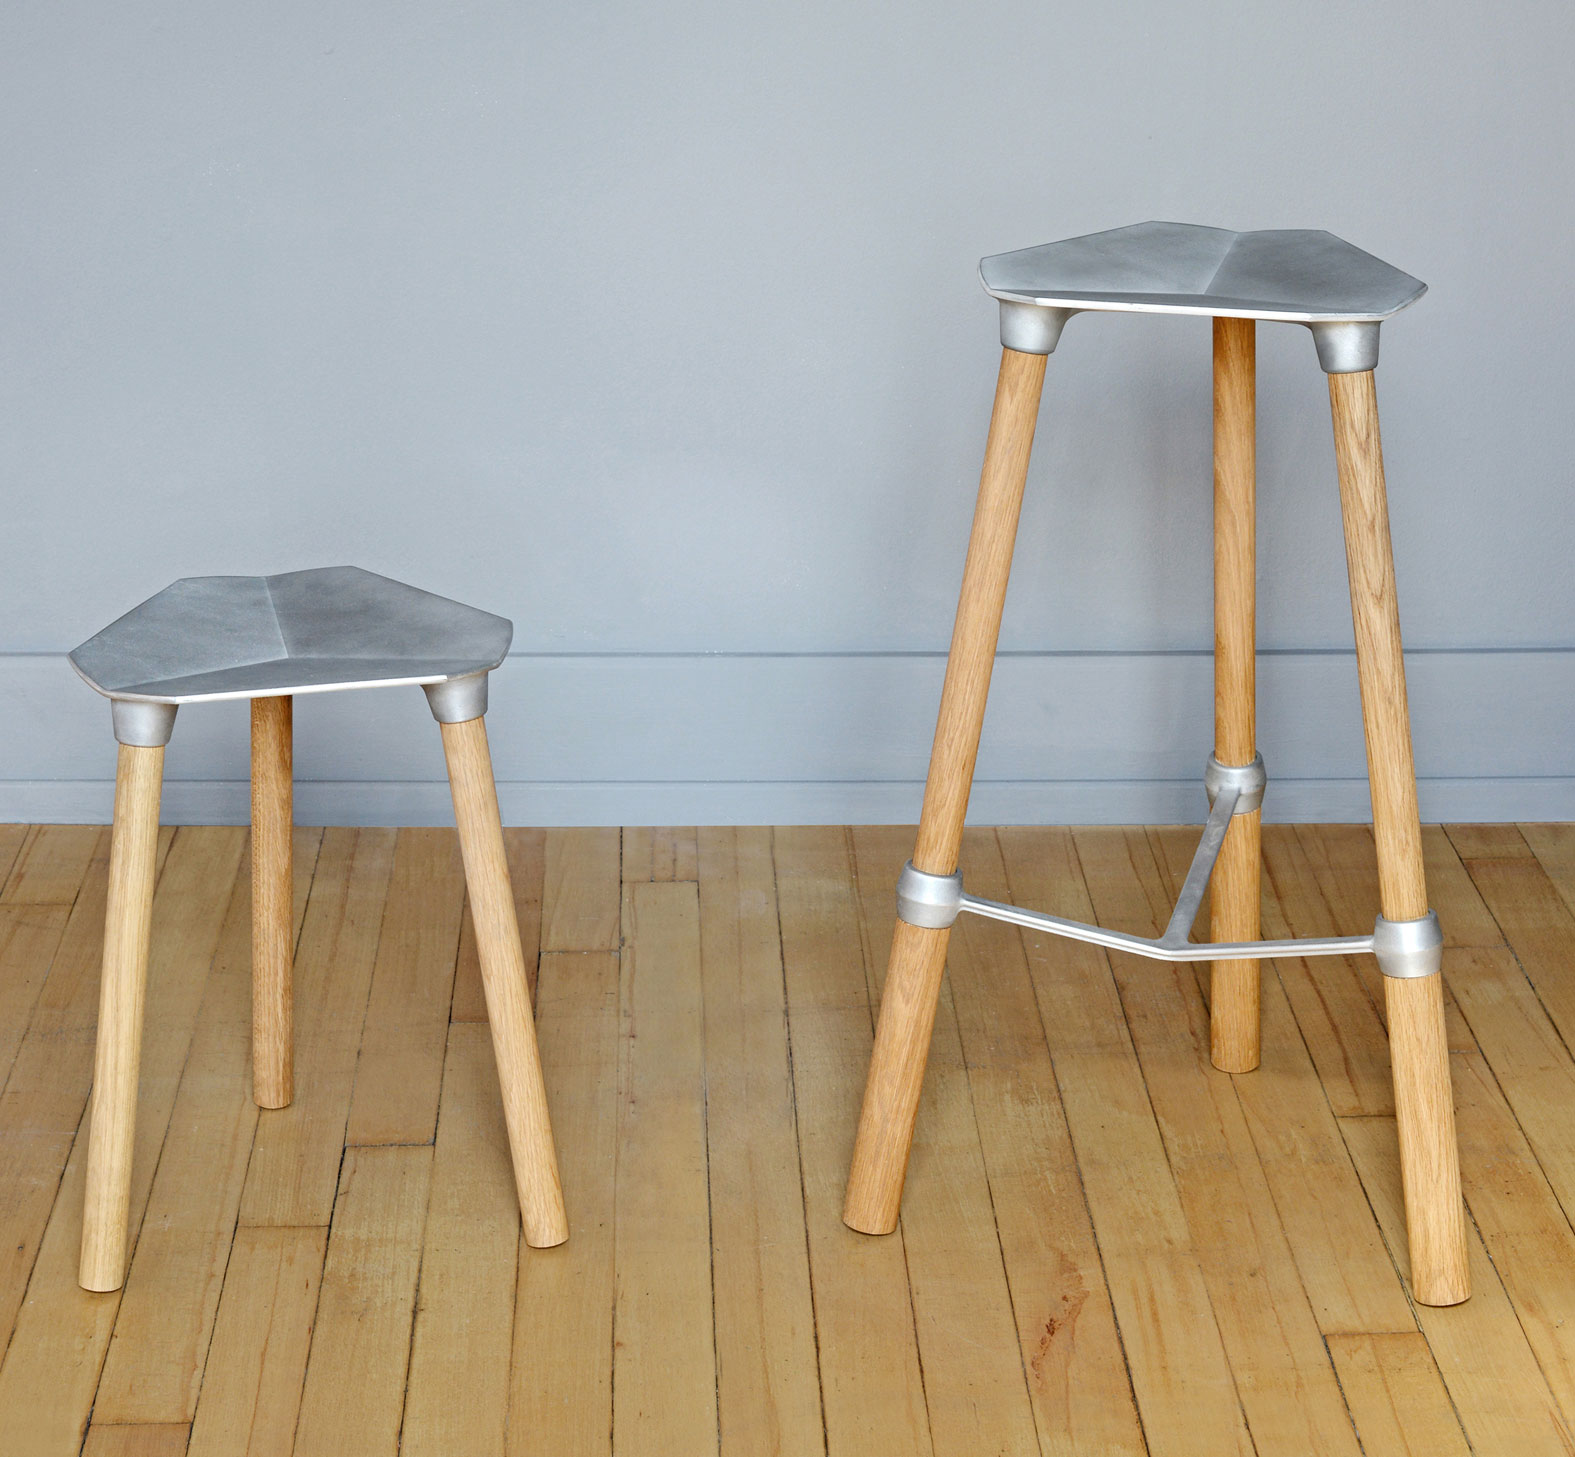 Furniture Design University London student work - product & furniture design ba(hons) degree course